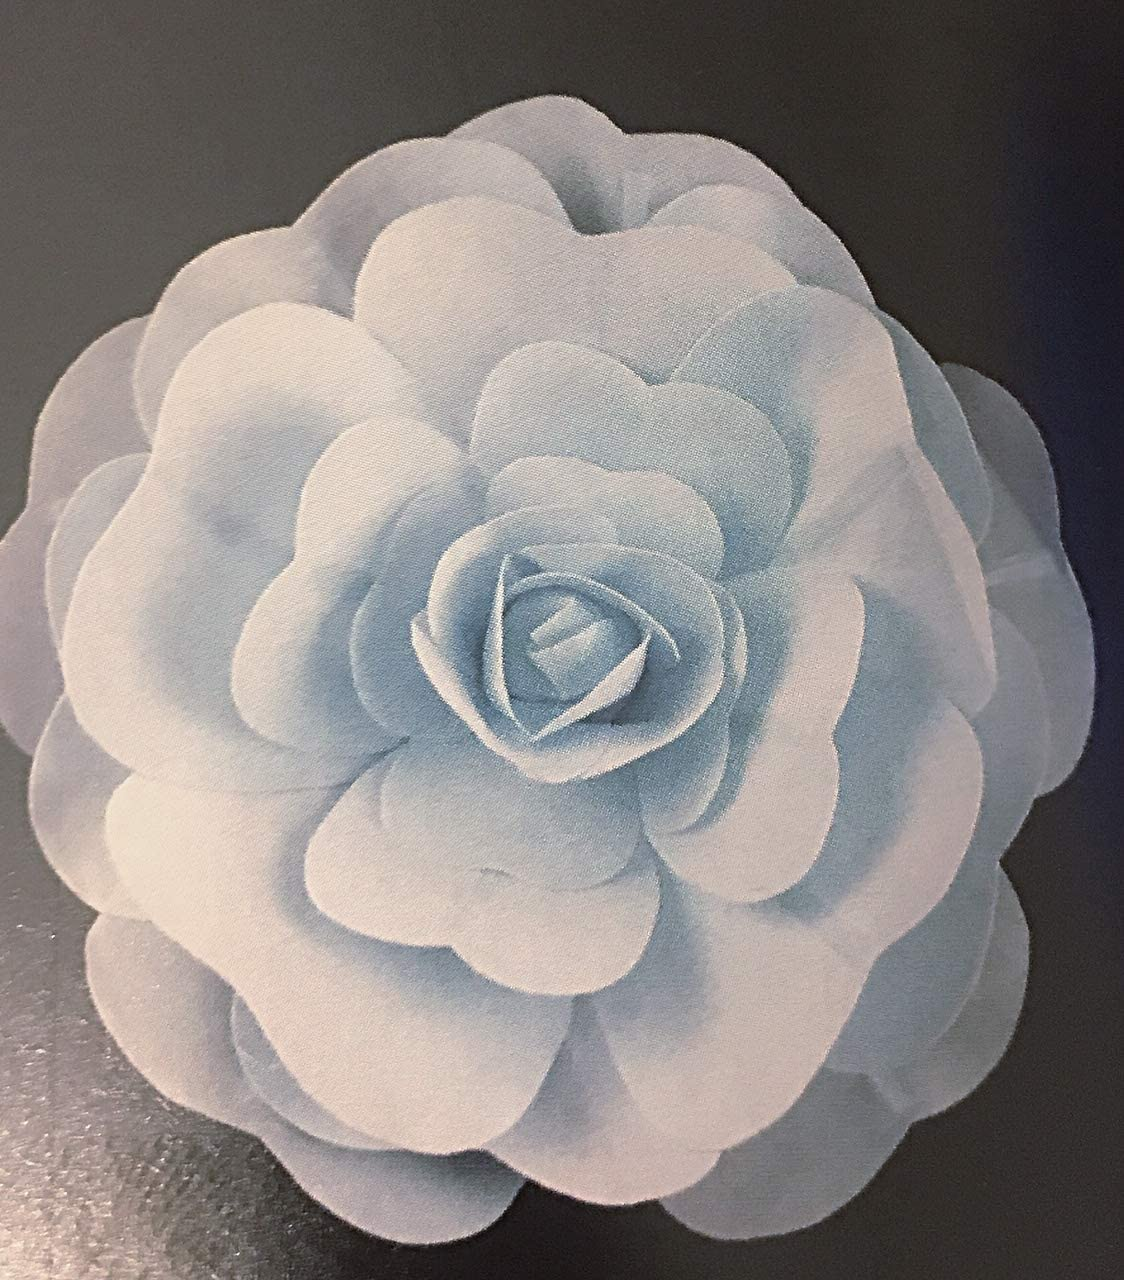 OOKI- 2Pcs 12 inch Premade Paper Flower Backdrop Decoration Giant Party Paper Flower Wedding Rose Flower Wall Backdrop DIY Paper Handmade Craft for Nursey,Baby Shower,Birthday,Home Decor (Light Blue)